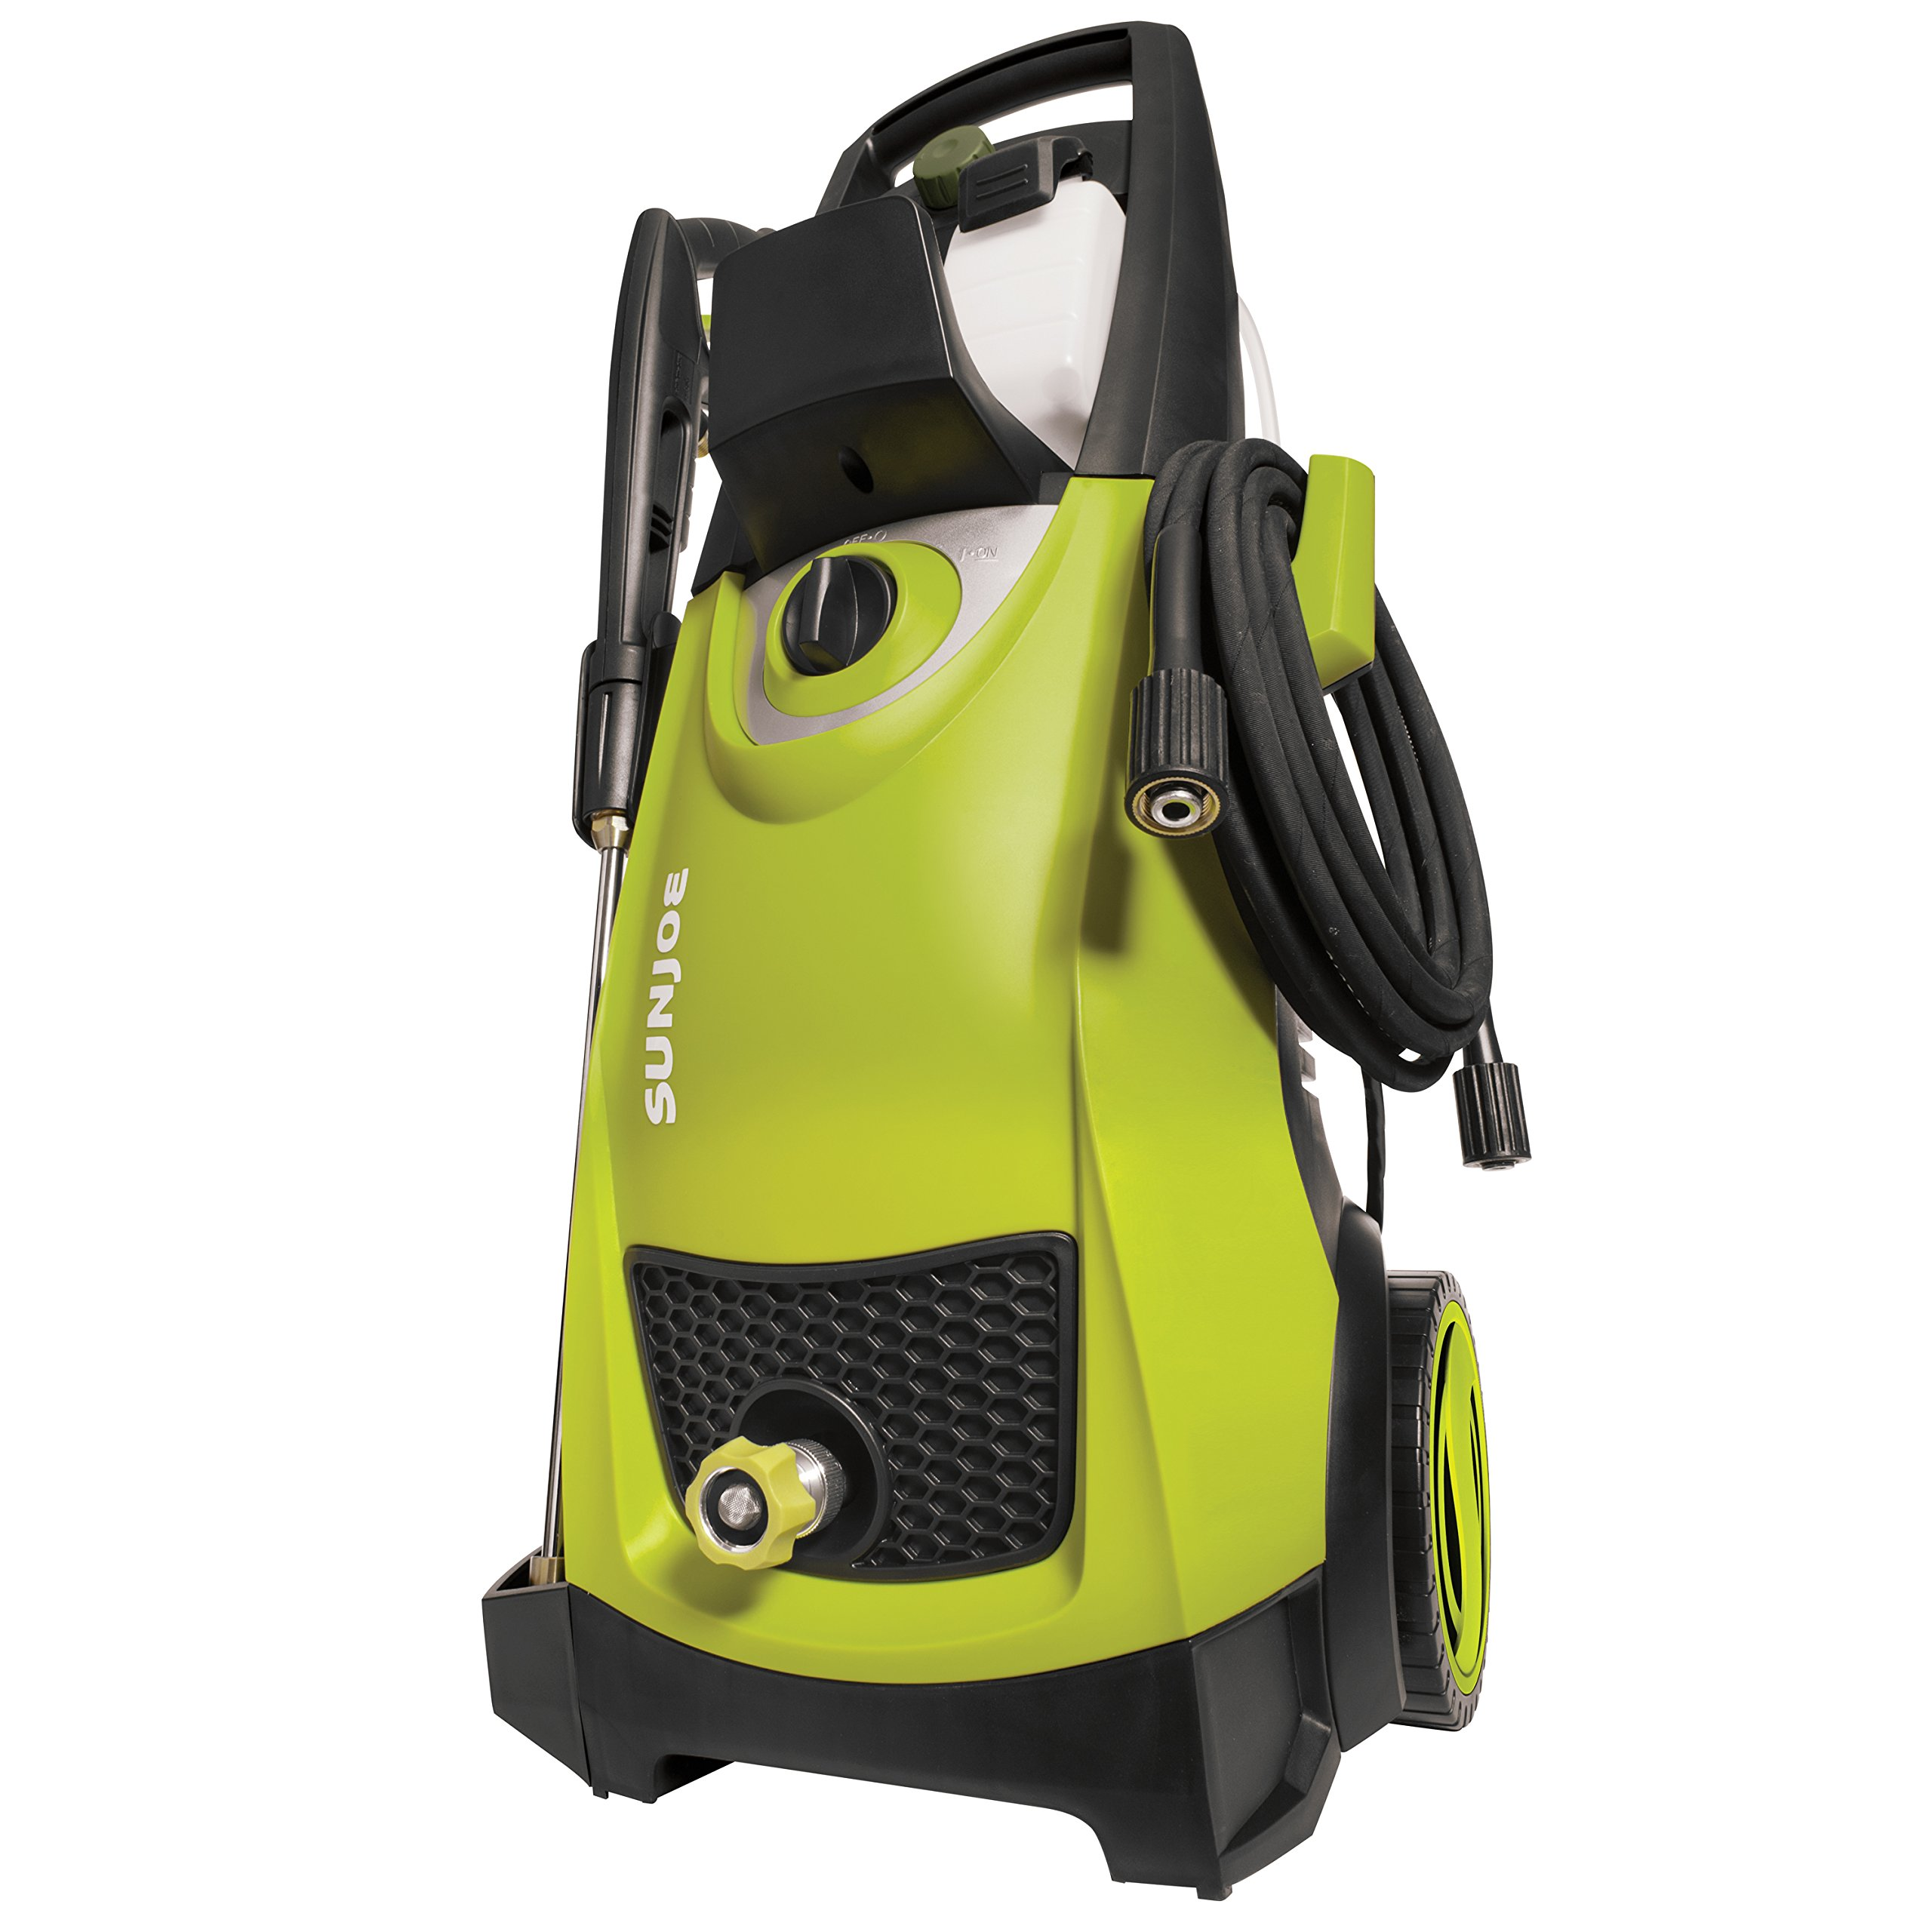 Sun Joe SPX3000-RM 2030 PSI 1.76 GPM Electric Pressure Washer (Certified Refurbished)